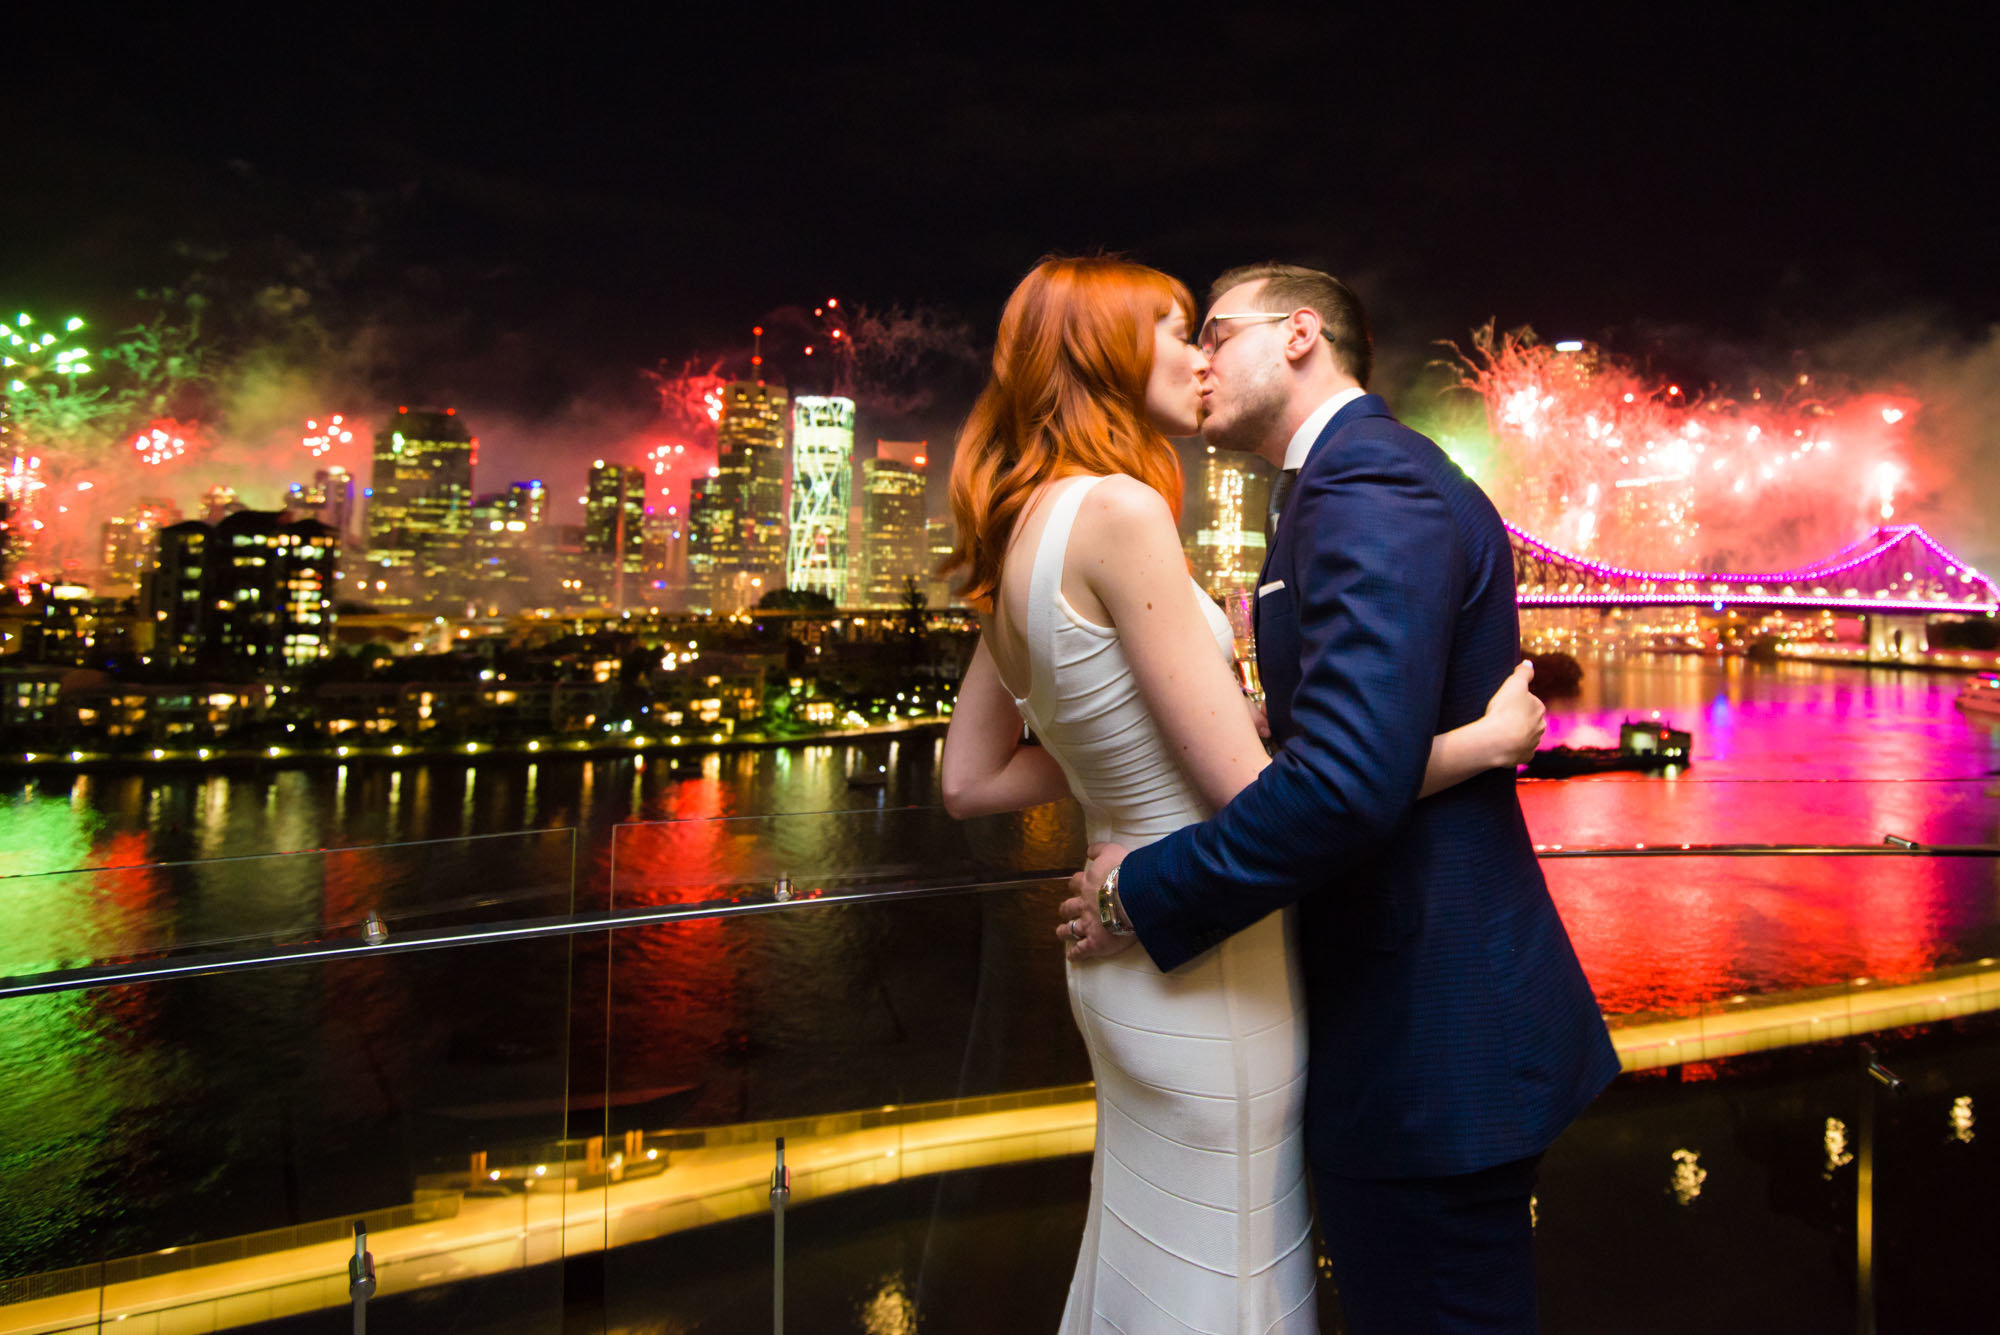 New Farm RiverFire Wedding Photography Anna Osetroff Brisbane